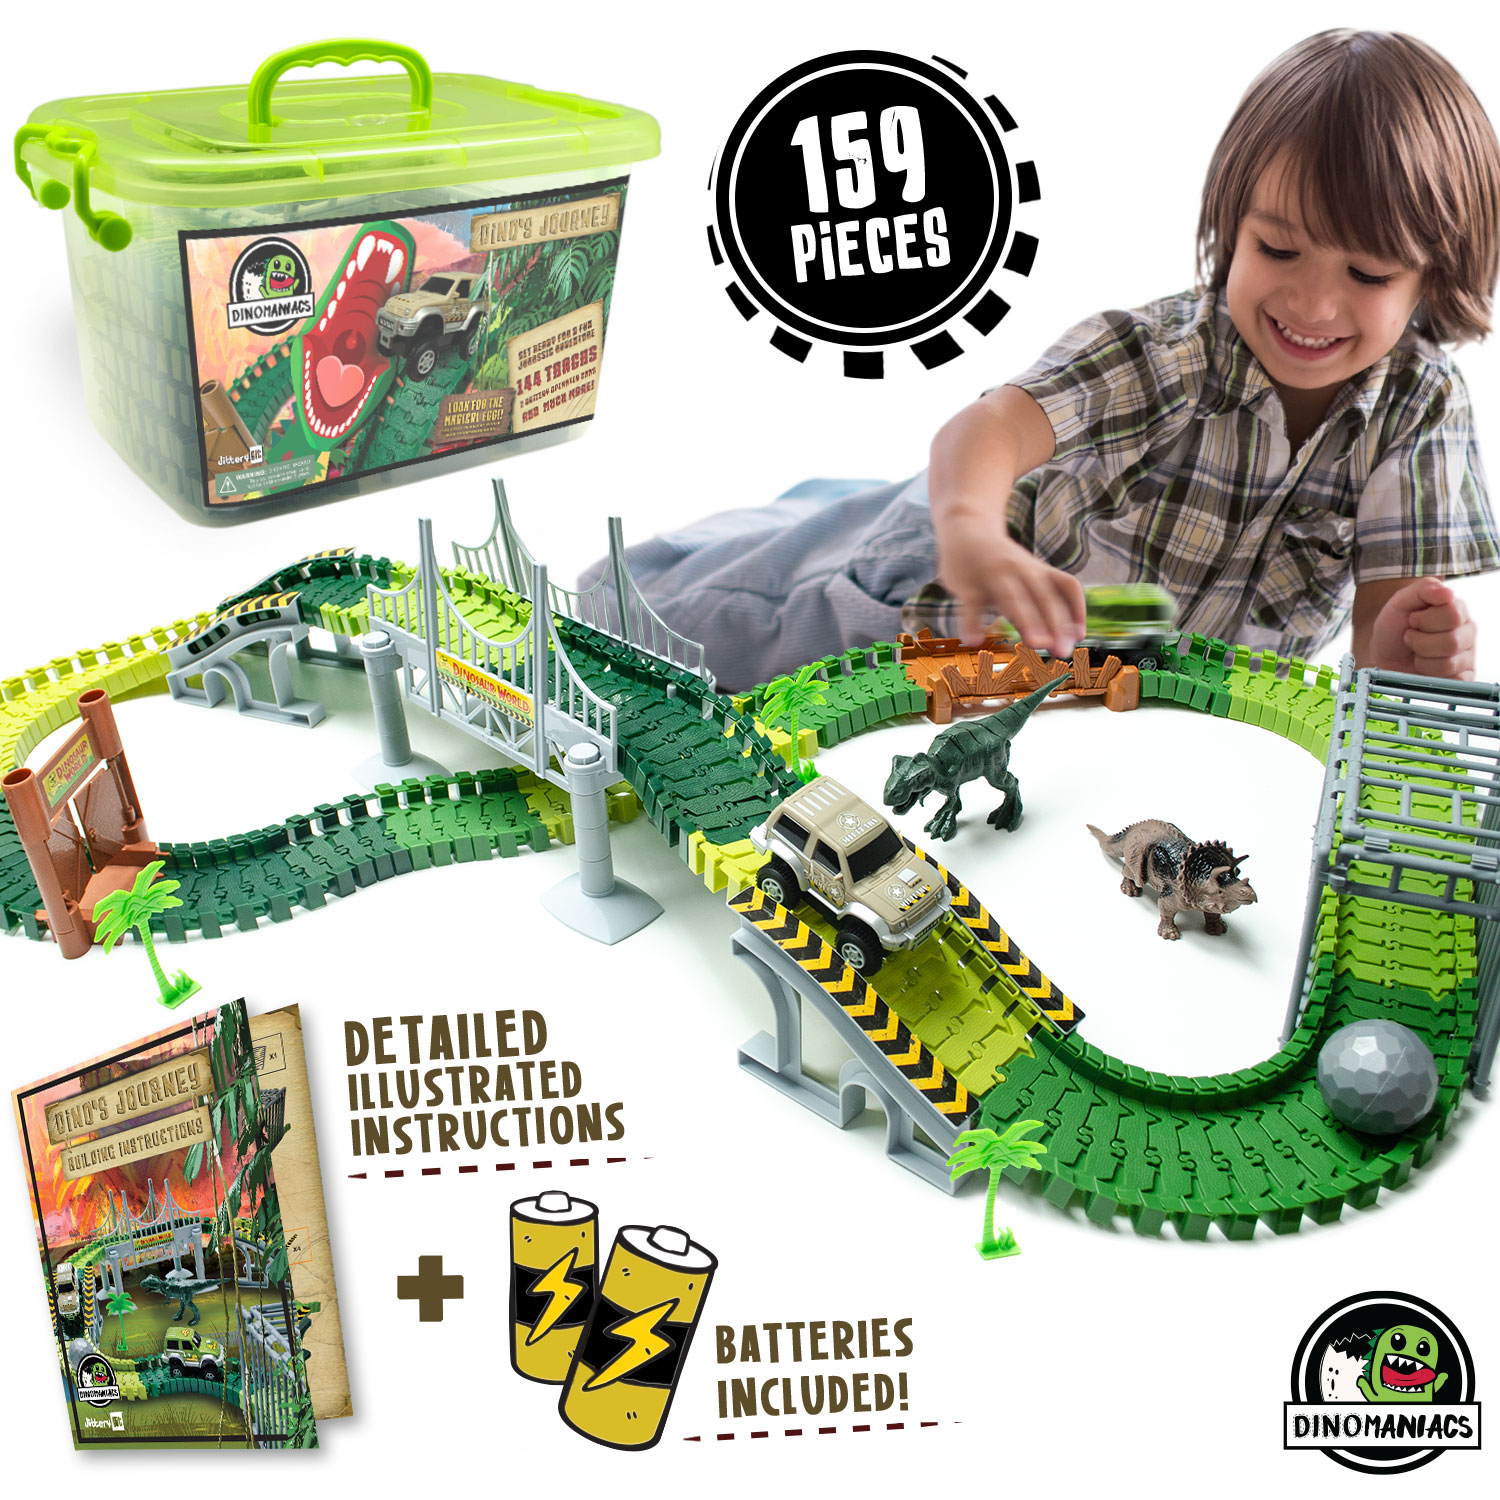 Dinosaur Train Track Toy | Jurassic Escape World | Build An Adventure Park | Fun Race Car Set | Awesome Gift for Kids | STEM Learning Toy for Toddlers, Boys And Girls Ages 3, 4, 5, 6